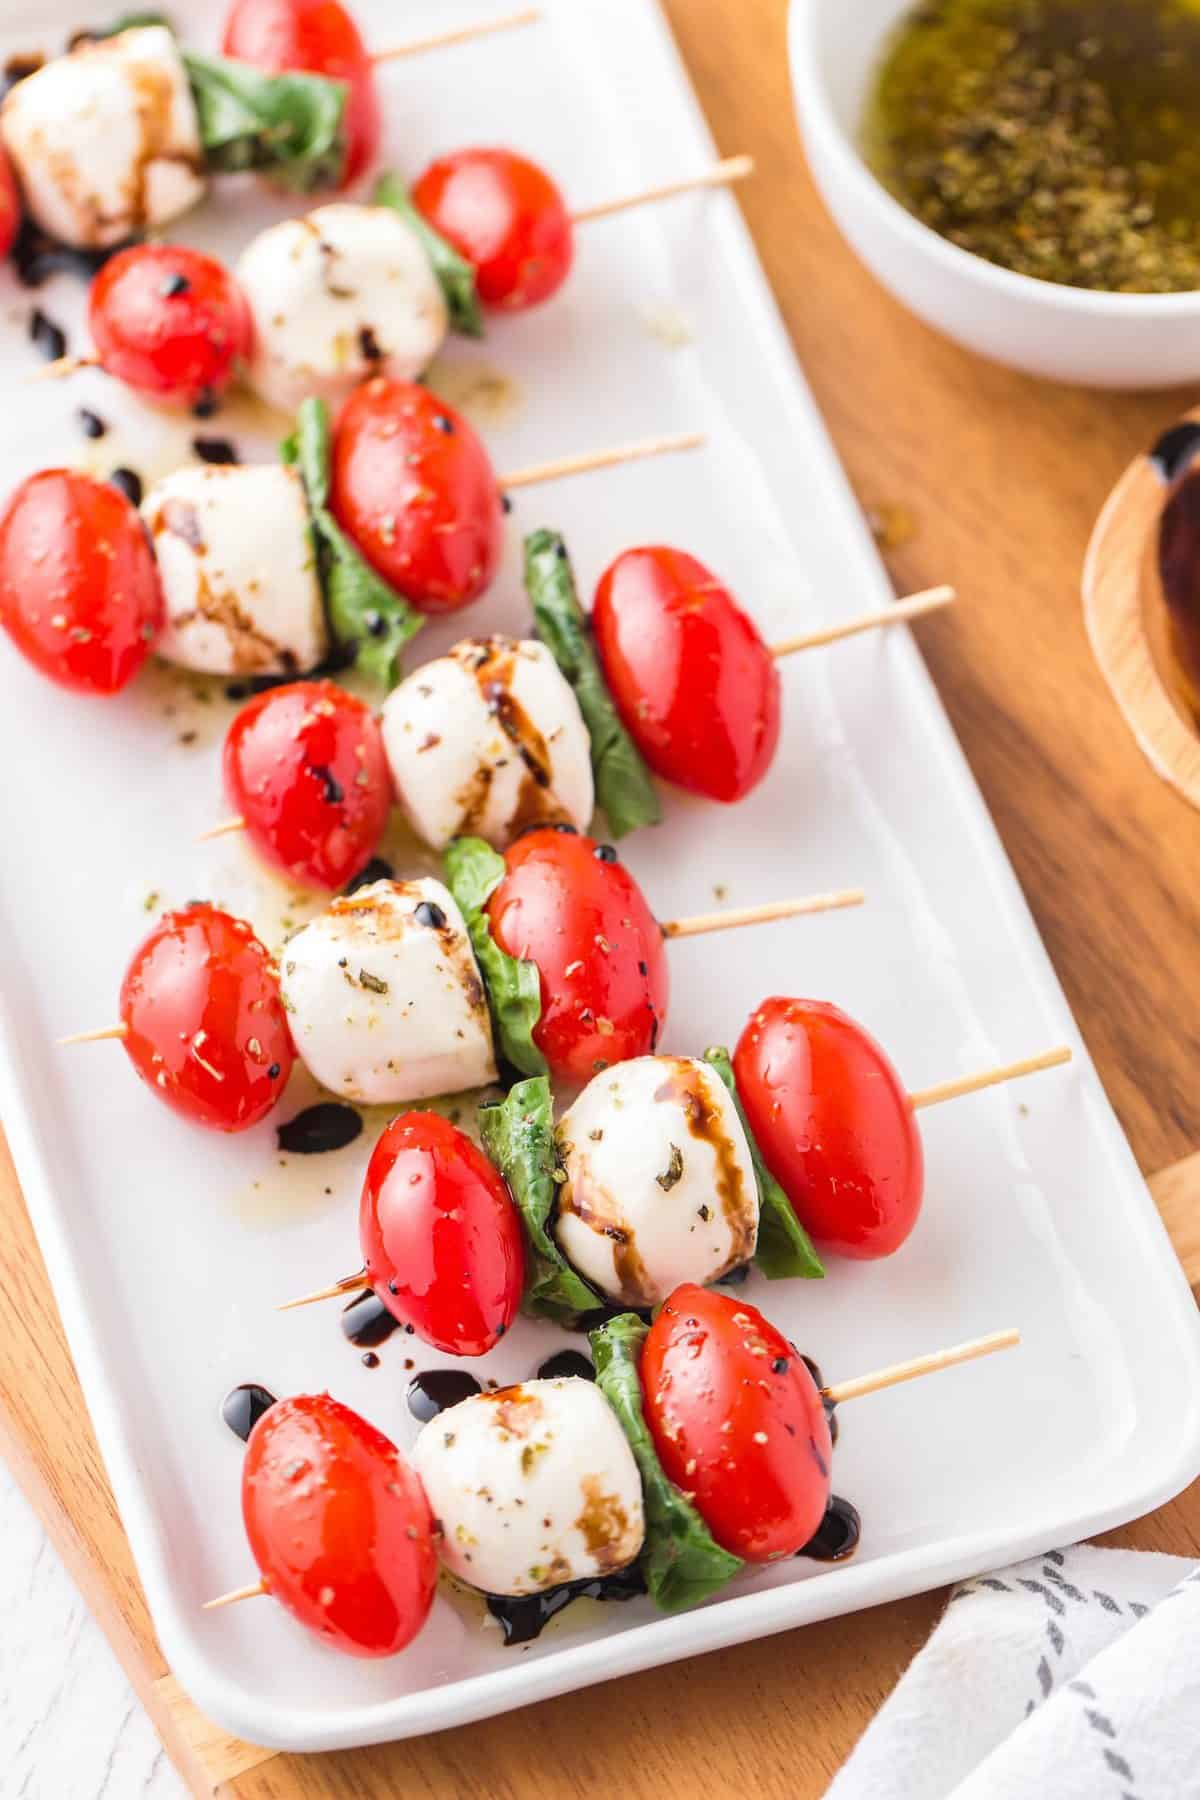 drizzle balsamic over the skewers